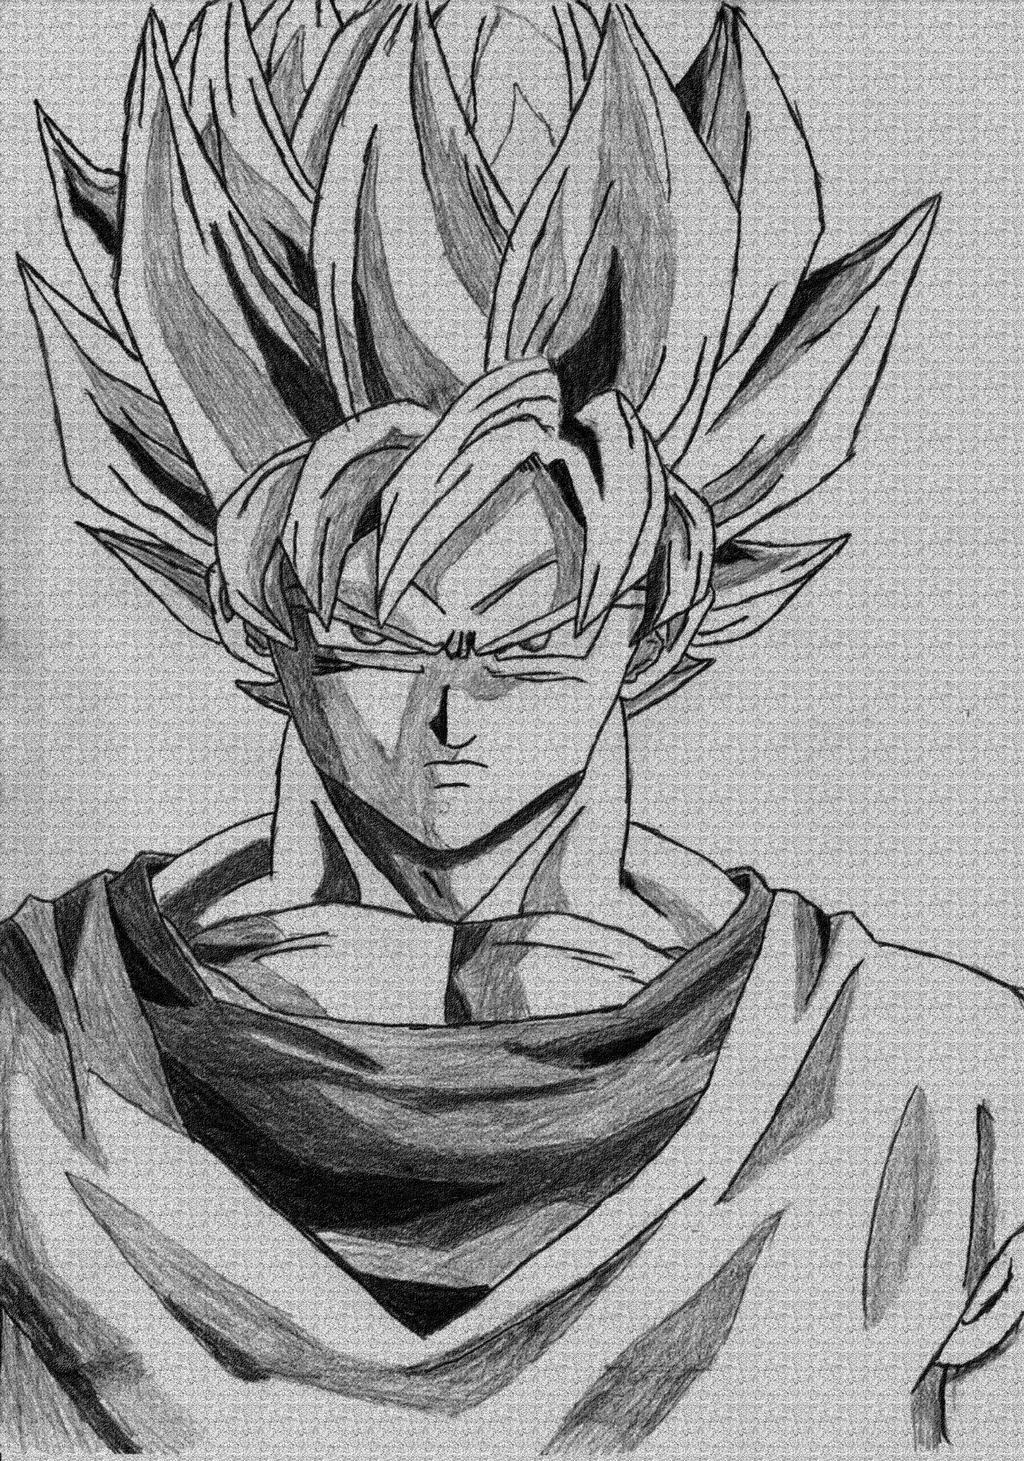 son_goku_by_screamangel-d76kw7s.jpg